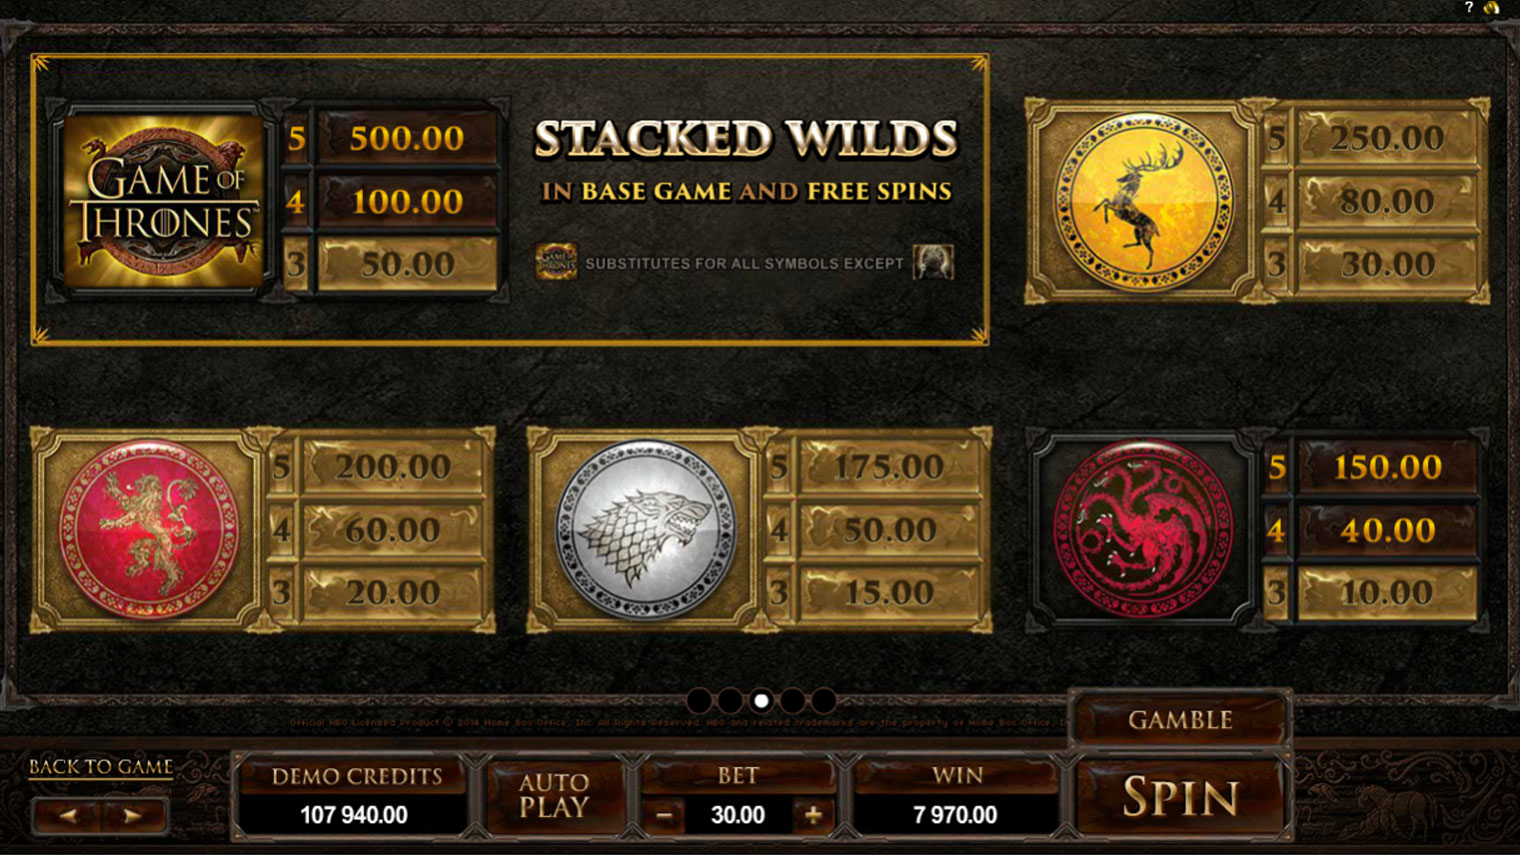 Game of Thrones Slot Game Symbols and Winning Combinations